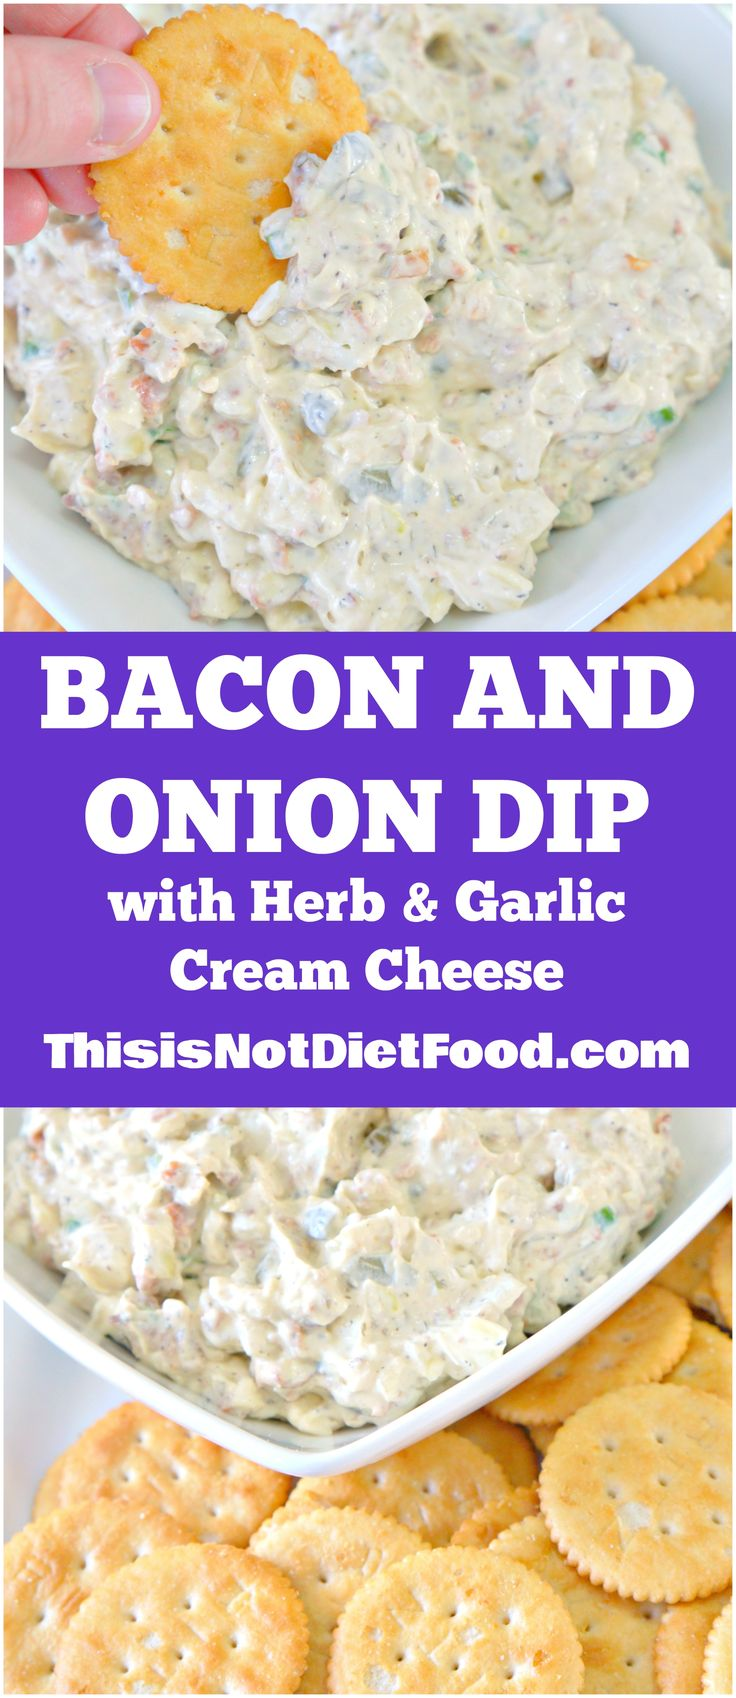 Bacon and Onion Dip with Herb and Garlic Cream Cheese. Easy party dip recipe served with Ritz crackers. Appetizer / Snack